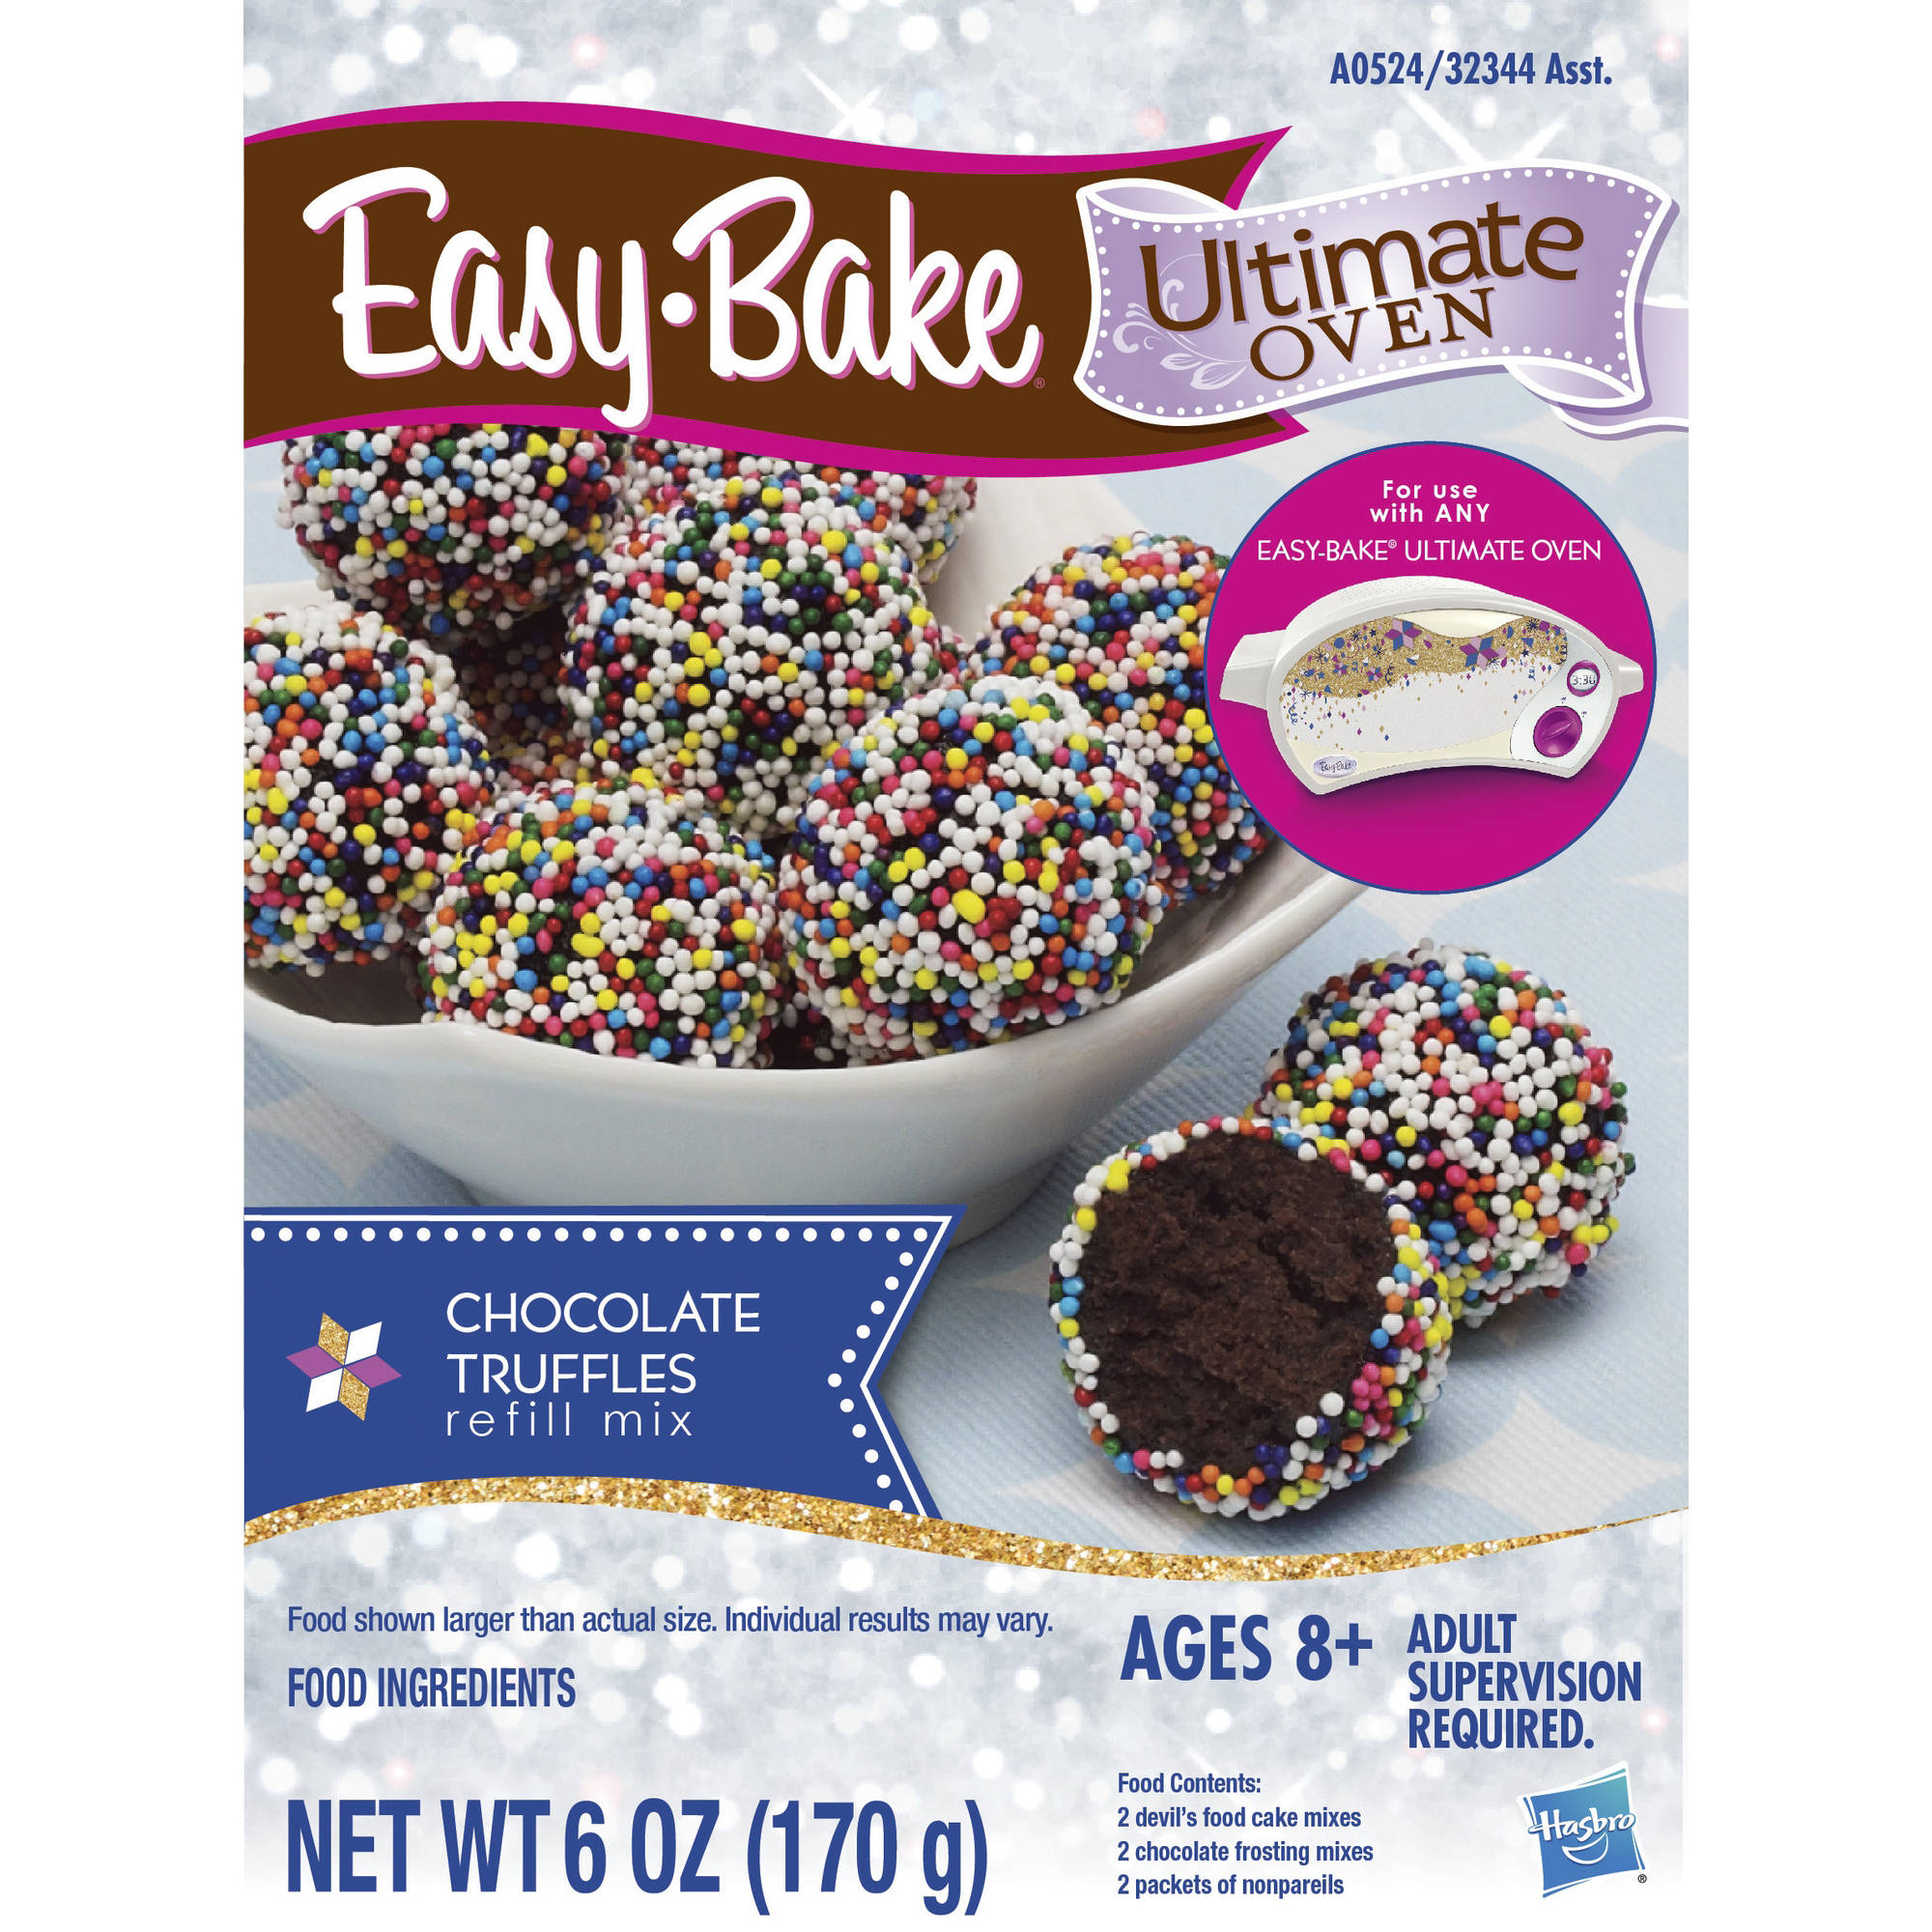 Easy-Bake Ultimate Oven Chocolate Truffles Refill Pack